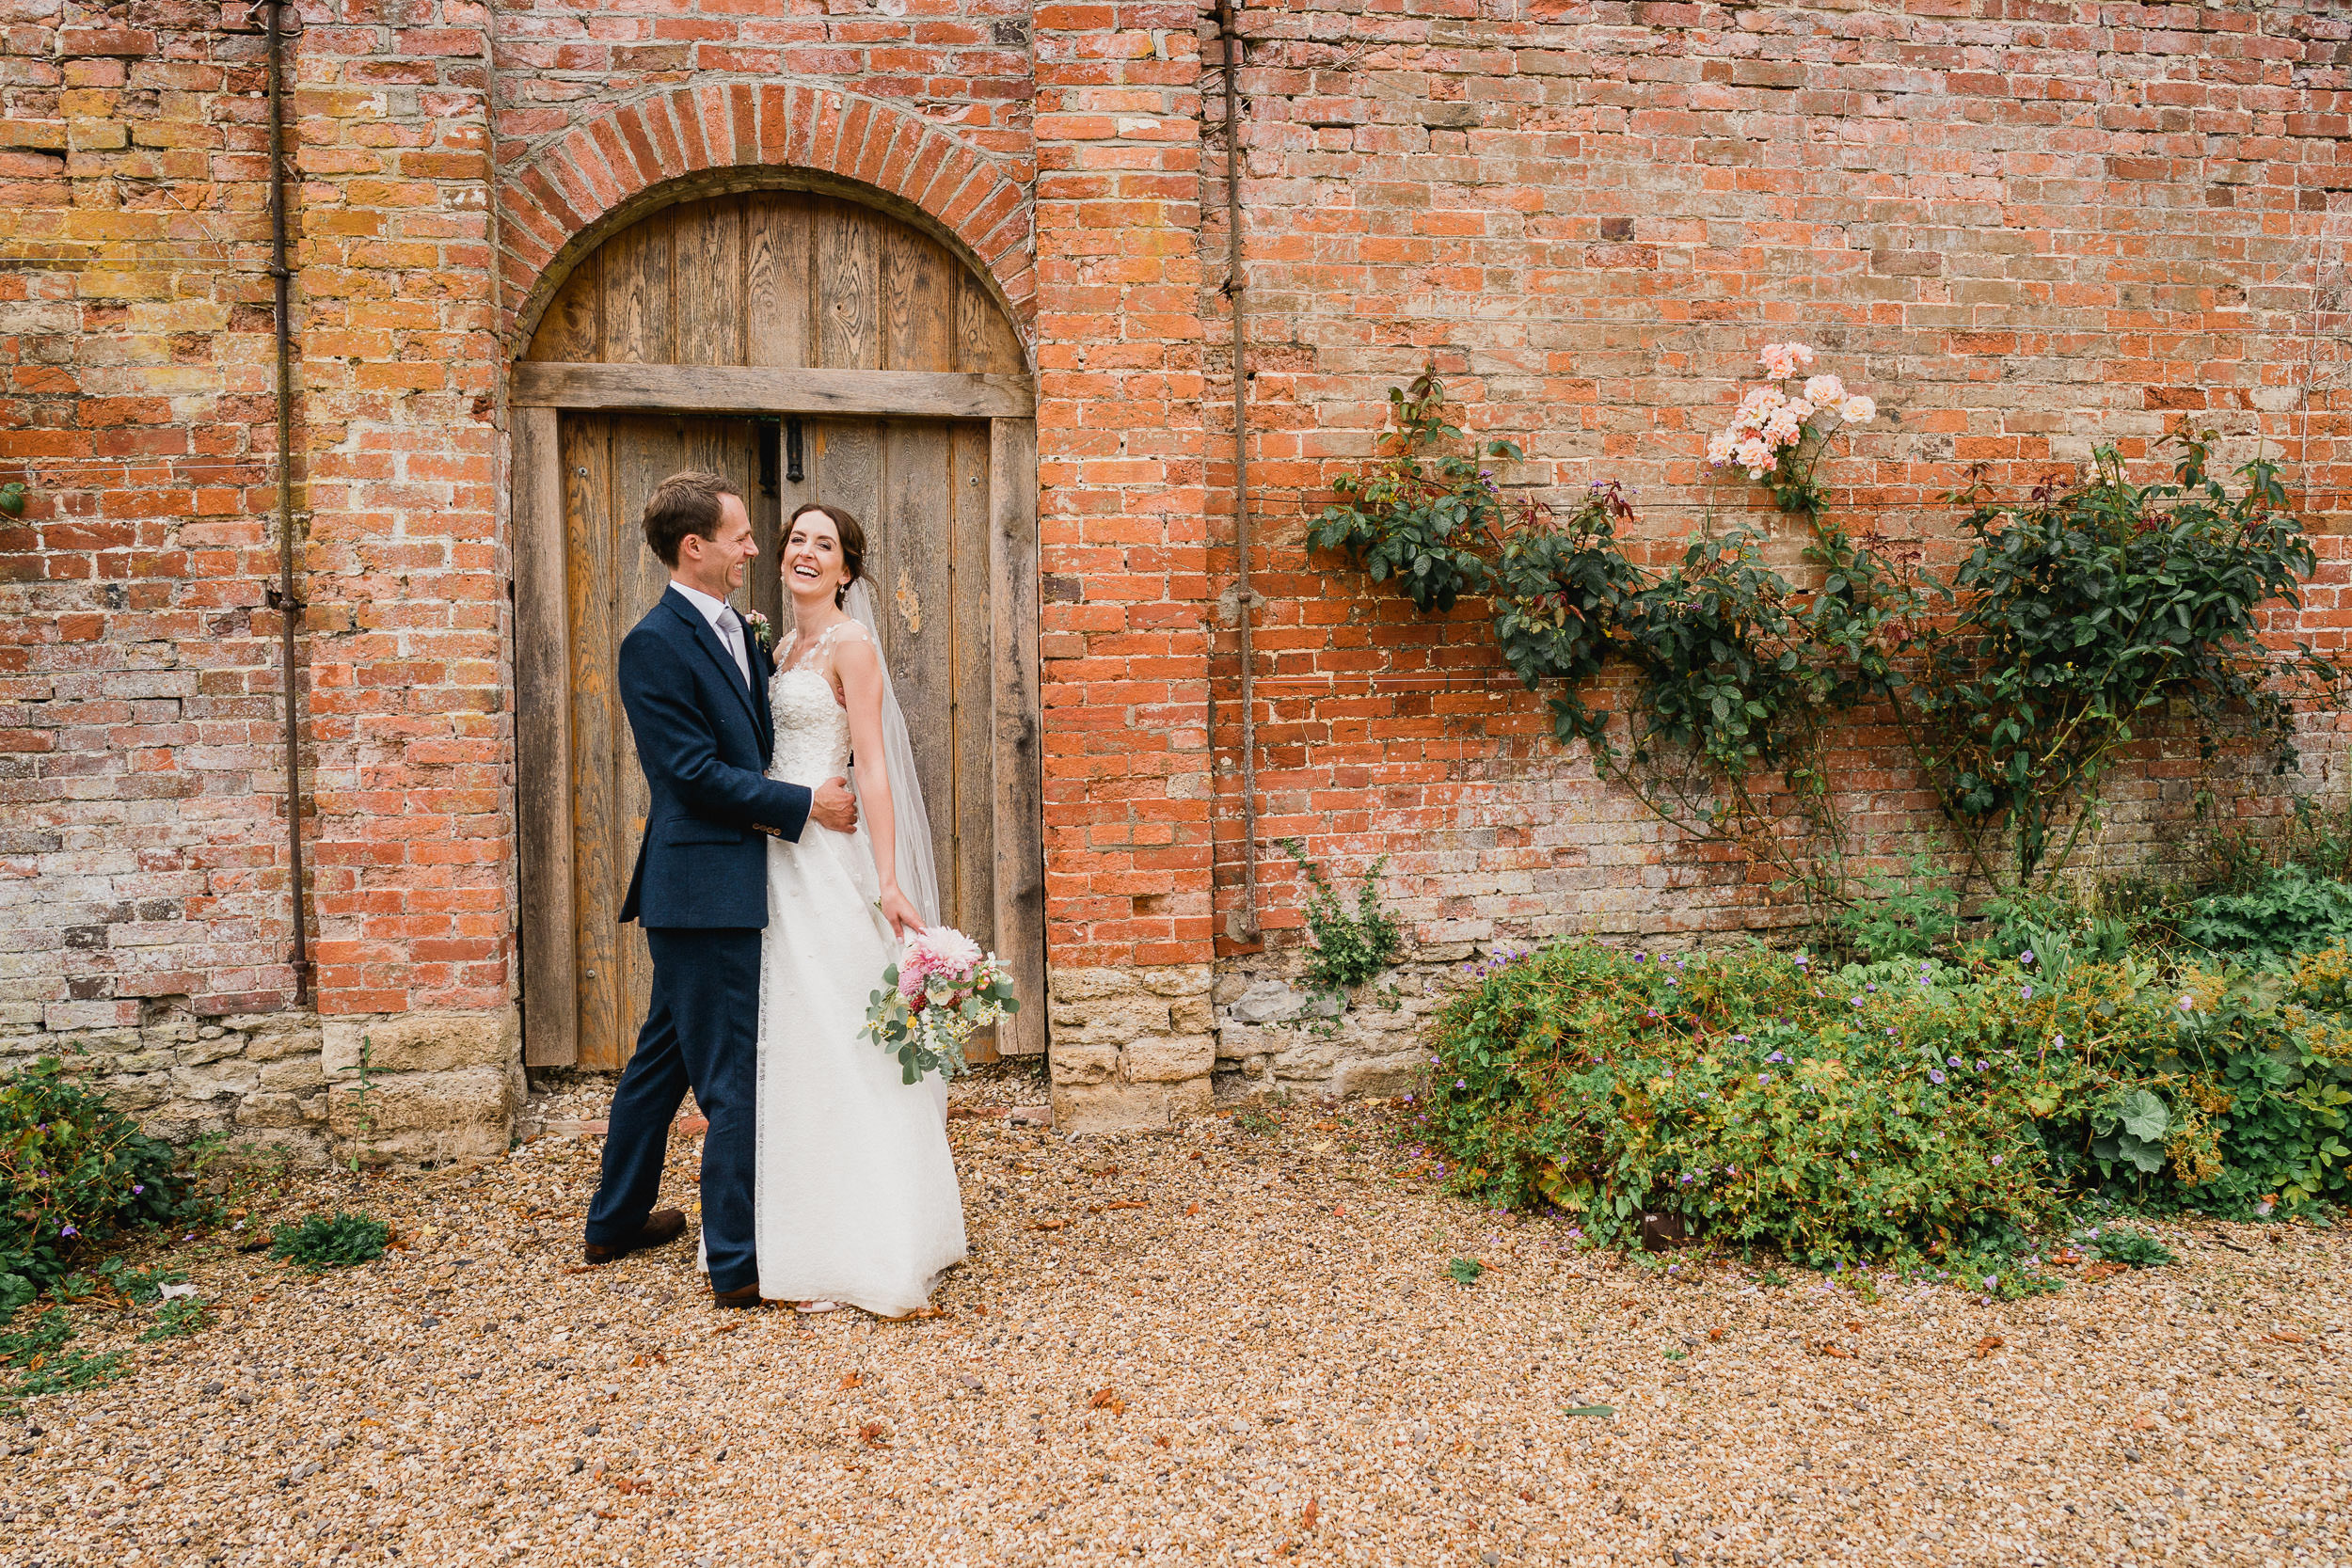 Orchardleigh Estate Wedding - Portrait of Bride and Groom in the Walled Garden